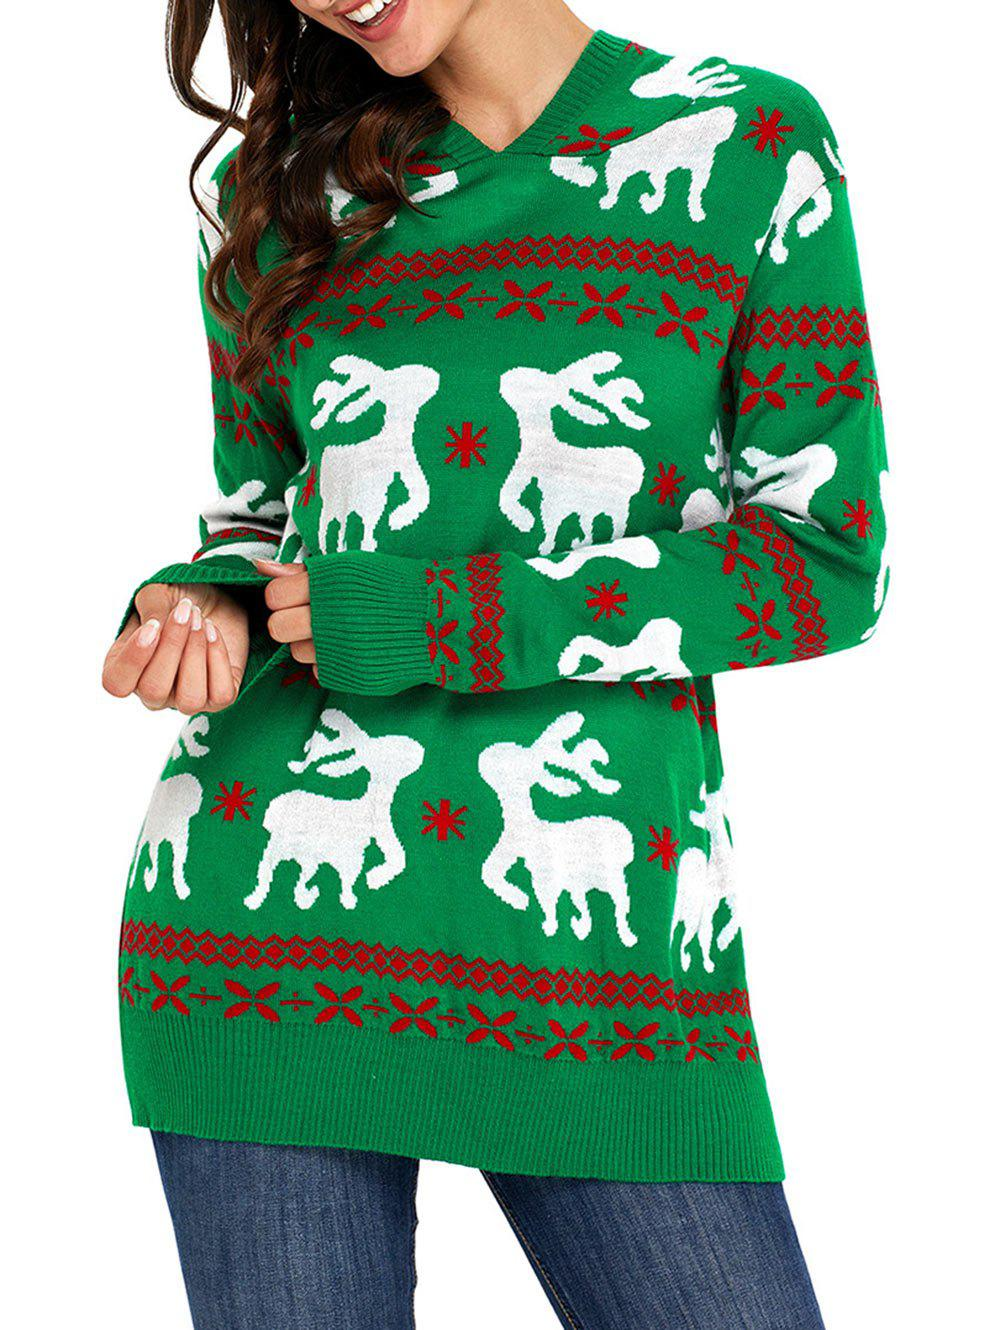 Christmas Deer Jacquard Hooded SweaterWOMEN<br><br>Size: 2XL; Color: GREEN; Type: Pullovers; Material: Acrylic; Sleeve Length: Full; Collar: Hooded; Style: Fashion; Pattern Type: Animal,Geometric; Season: Fall,Spring,Winter; Weight: 0.6100kg; Package Contents: 1 x Sweater;